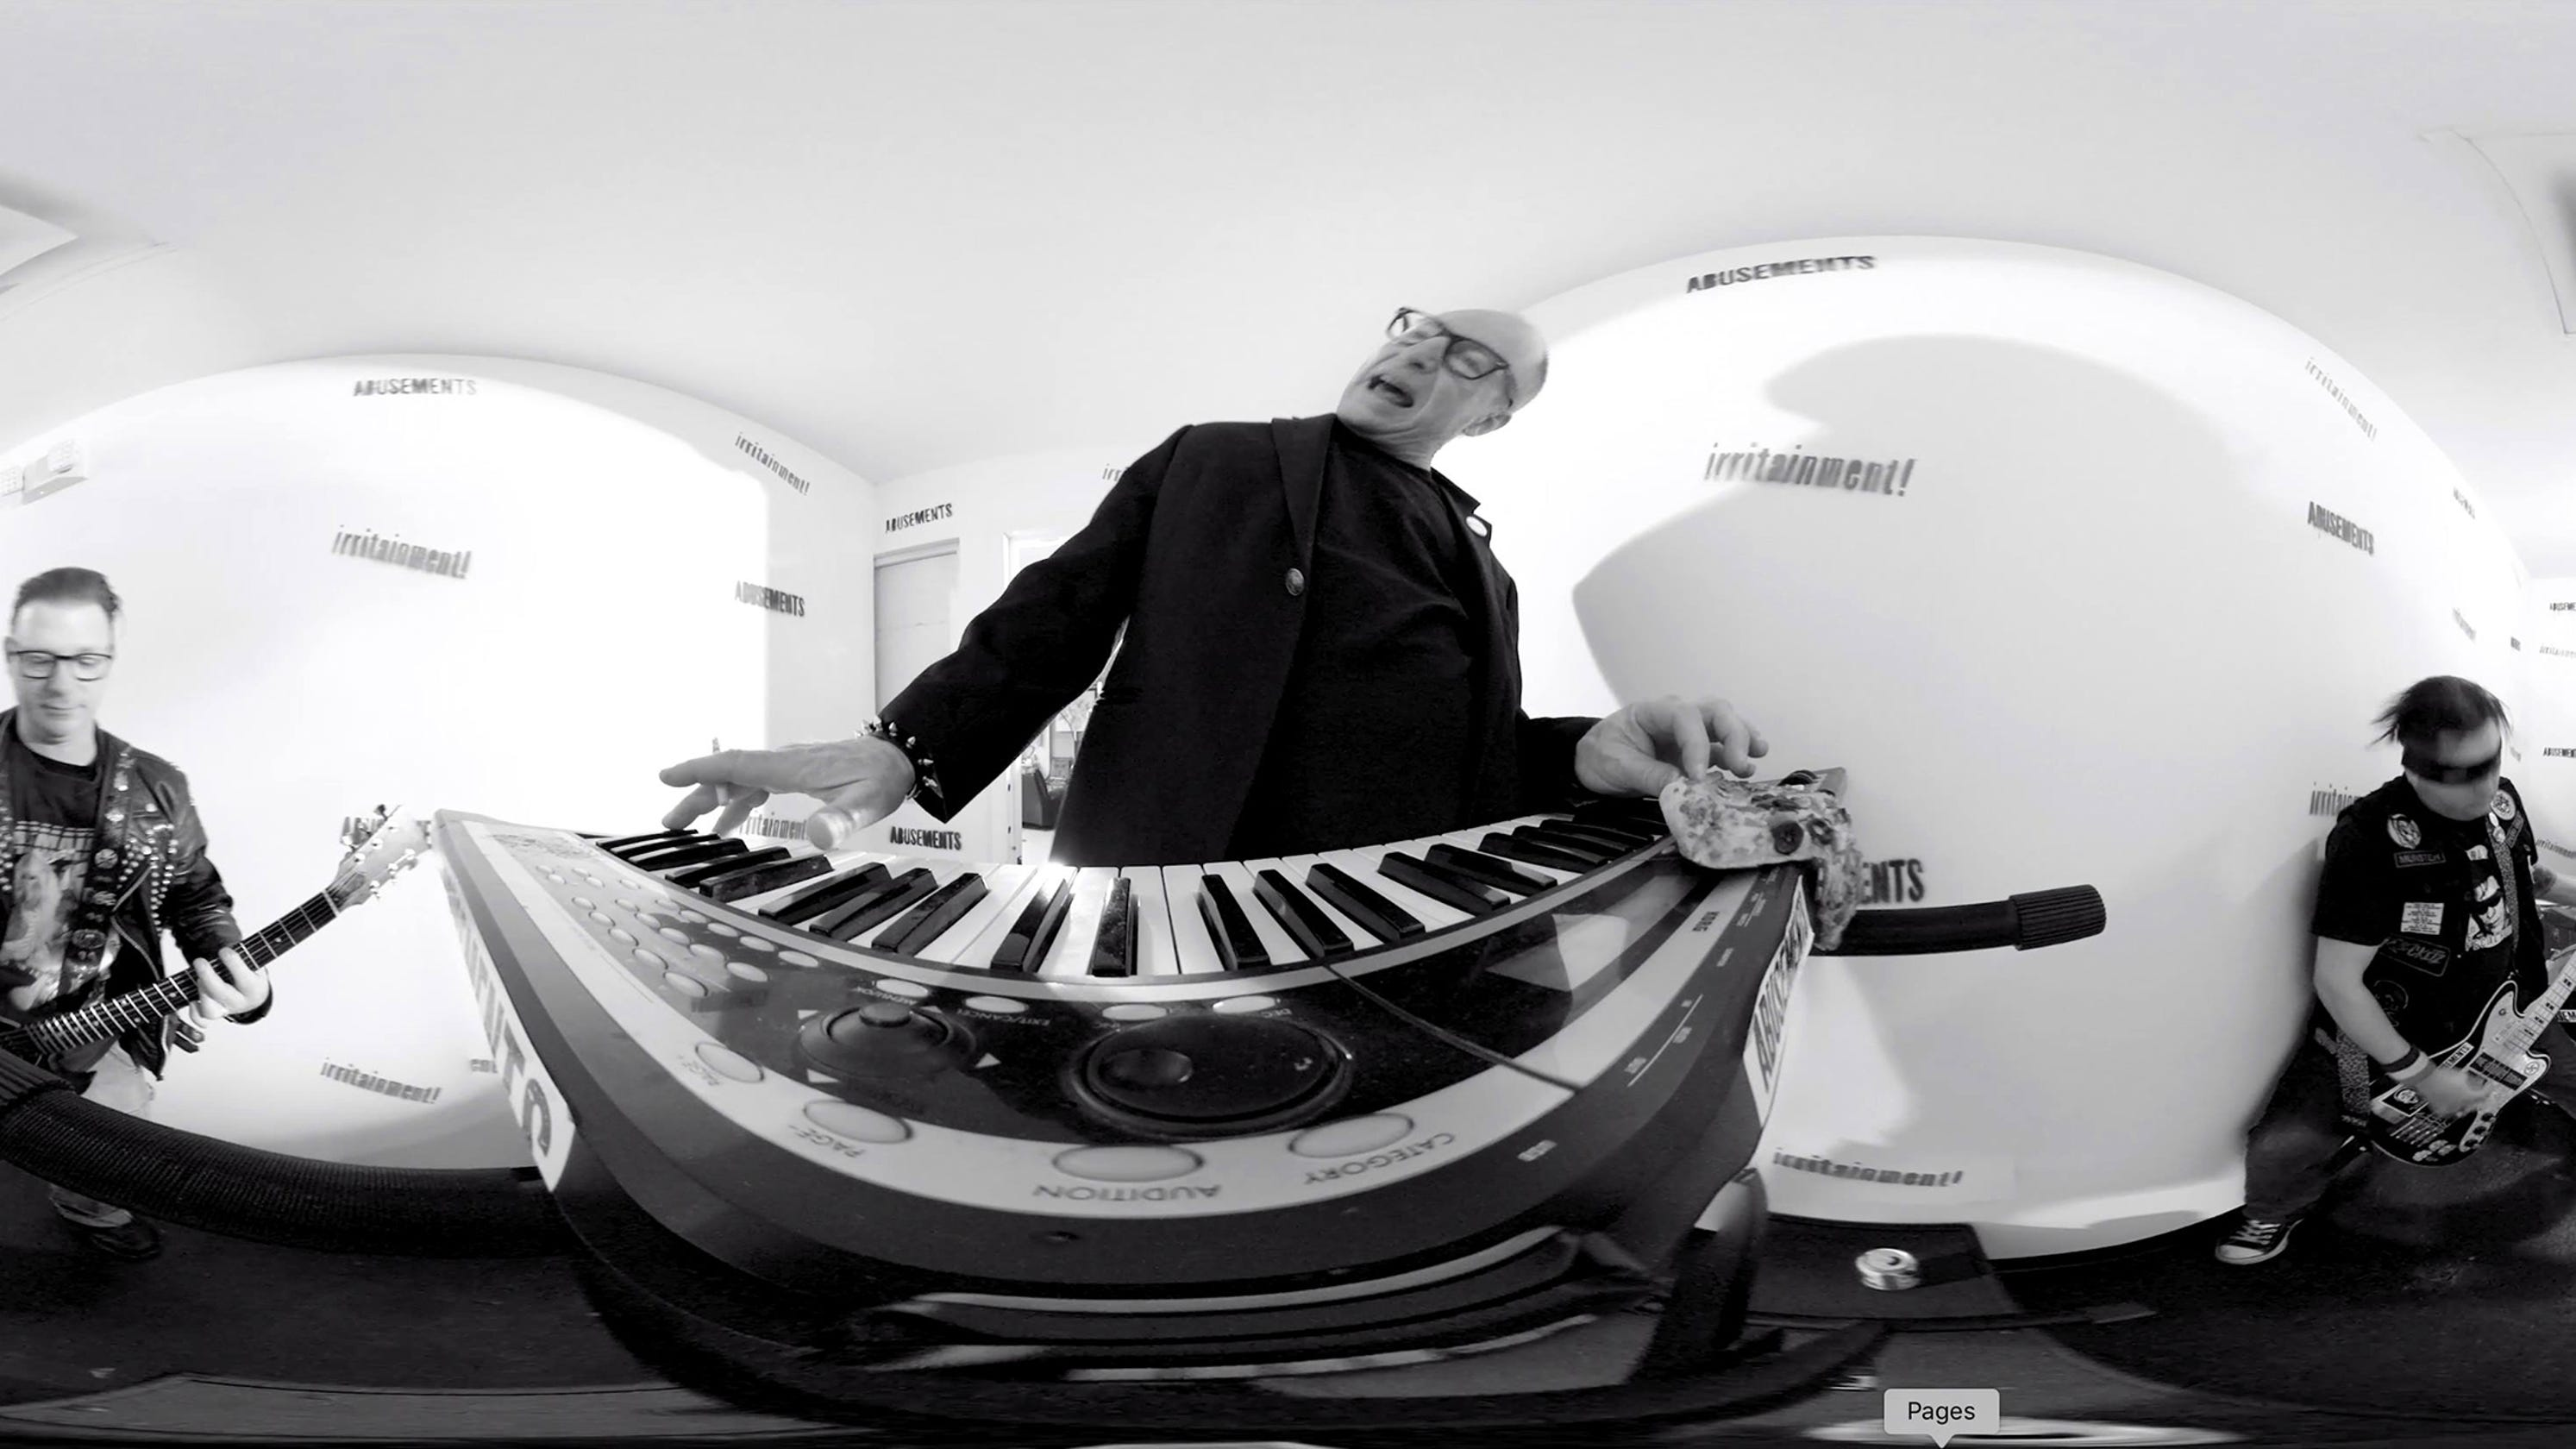 Abusements to release 360-degree VR 'Irritainment' music video